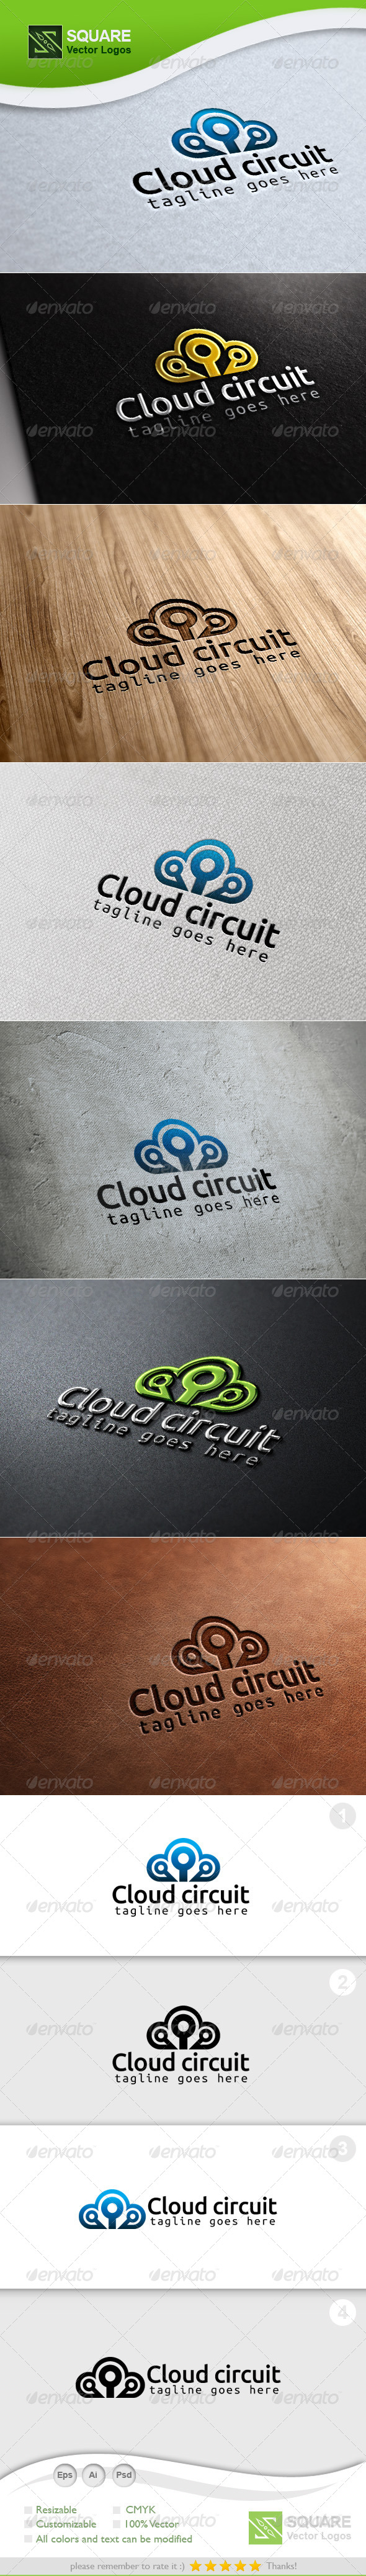 GraphicRiver Cloud Circuit Vector Logo Template 6991969